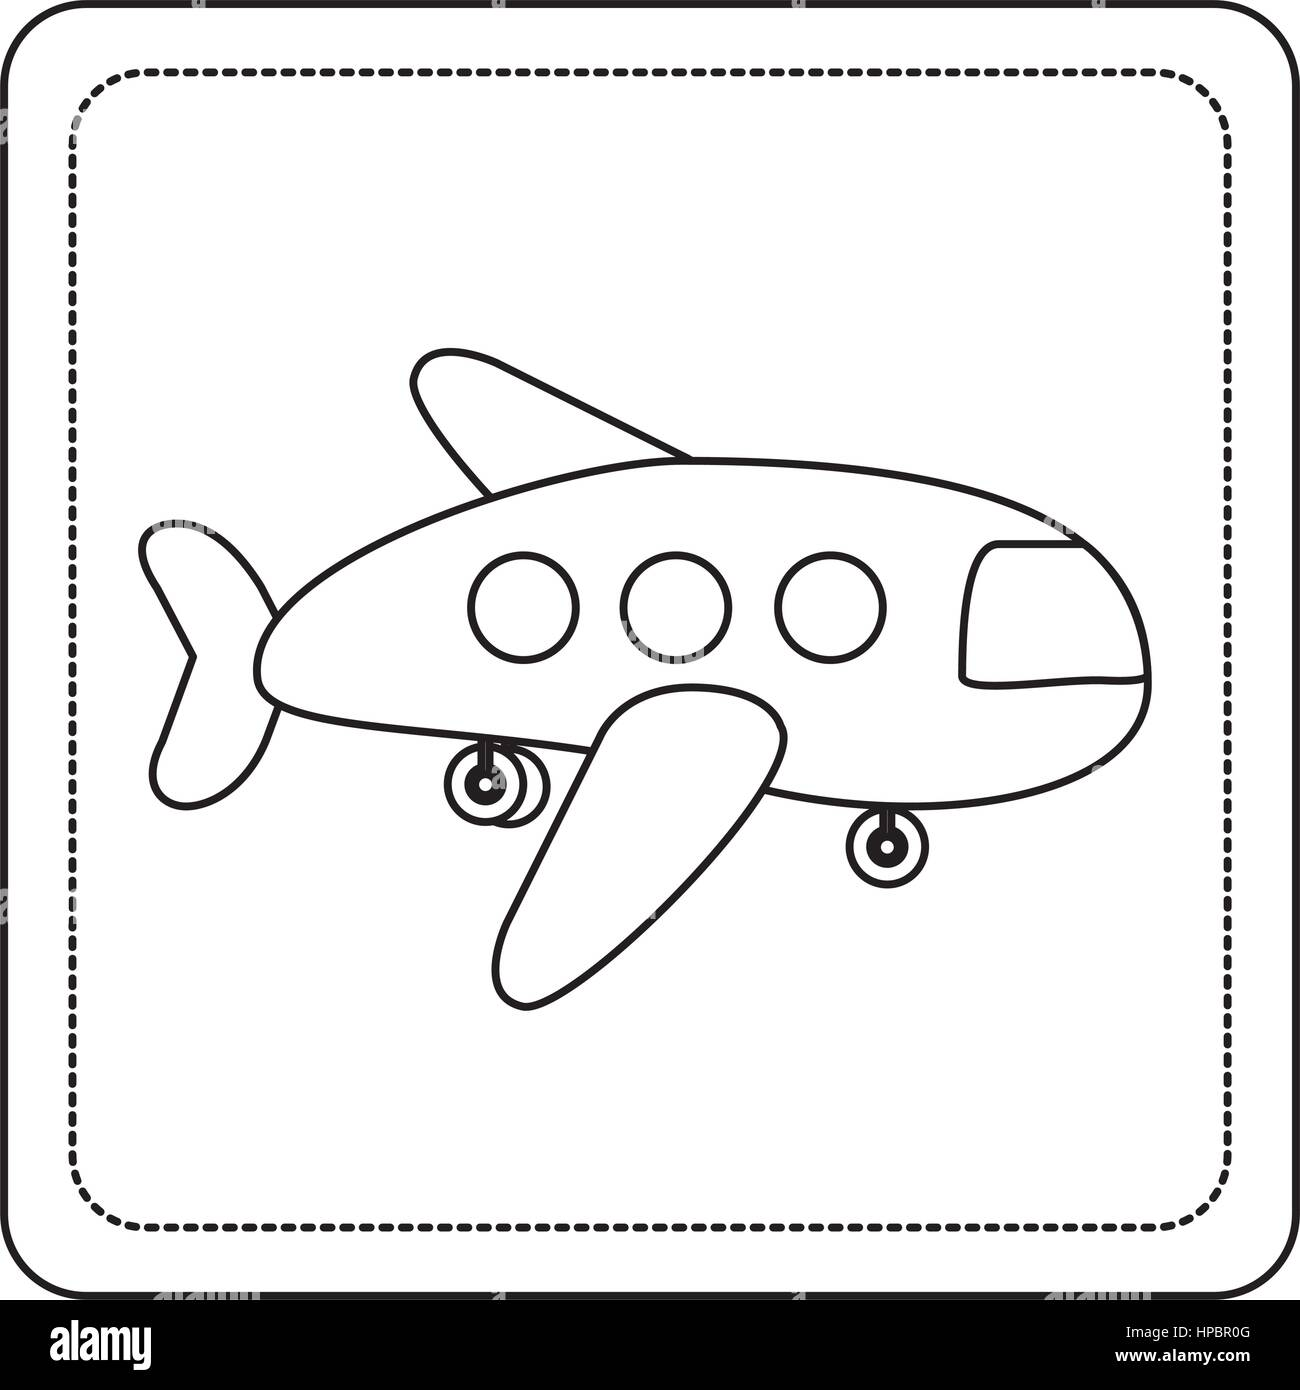 contour toy airplane fly picture icon - Stock Image